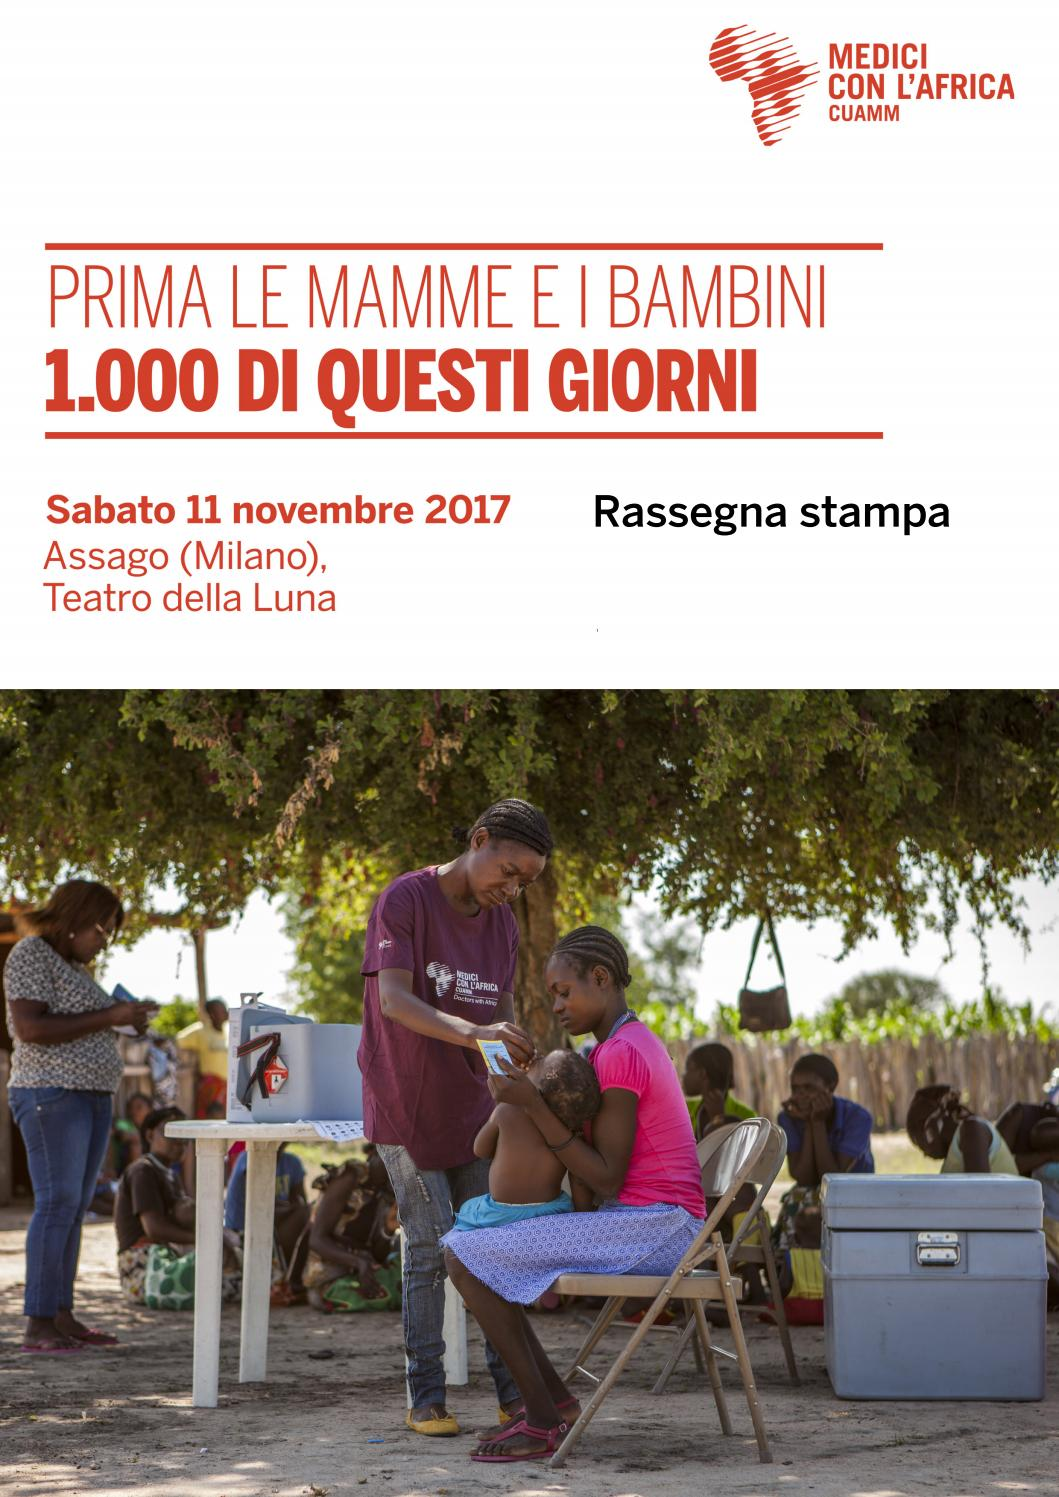 Rassegna Stampa Annual Meeting 2017 By Medici Con L Africa Cuamm